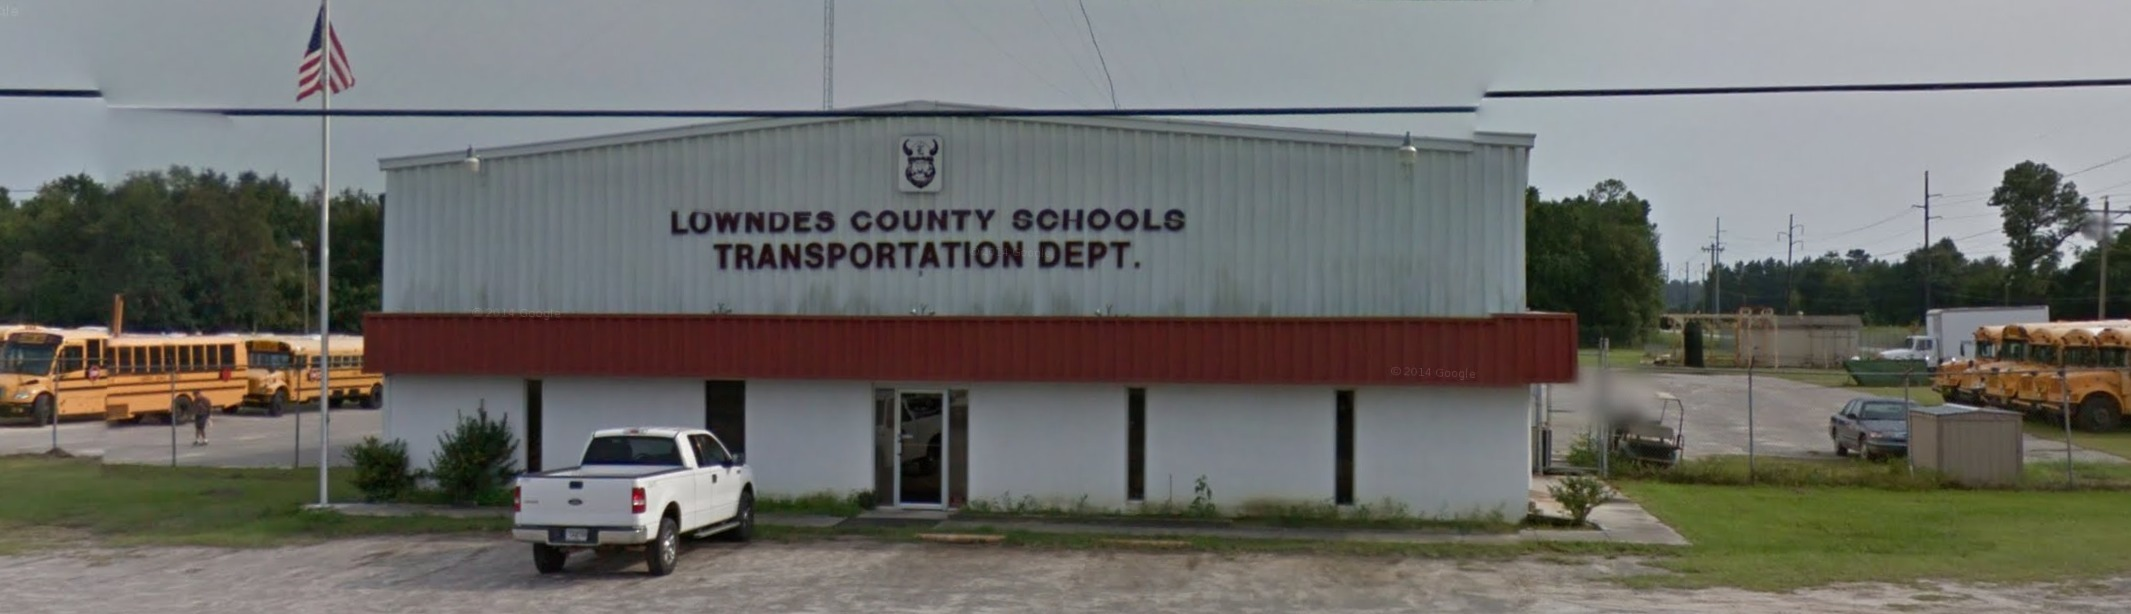 2131x614 Google Street View, SE Corner Clay and Howell Roads, in Lowndes County Schools Transportation Department, by John S. Quarterman, 3 November 2017